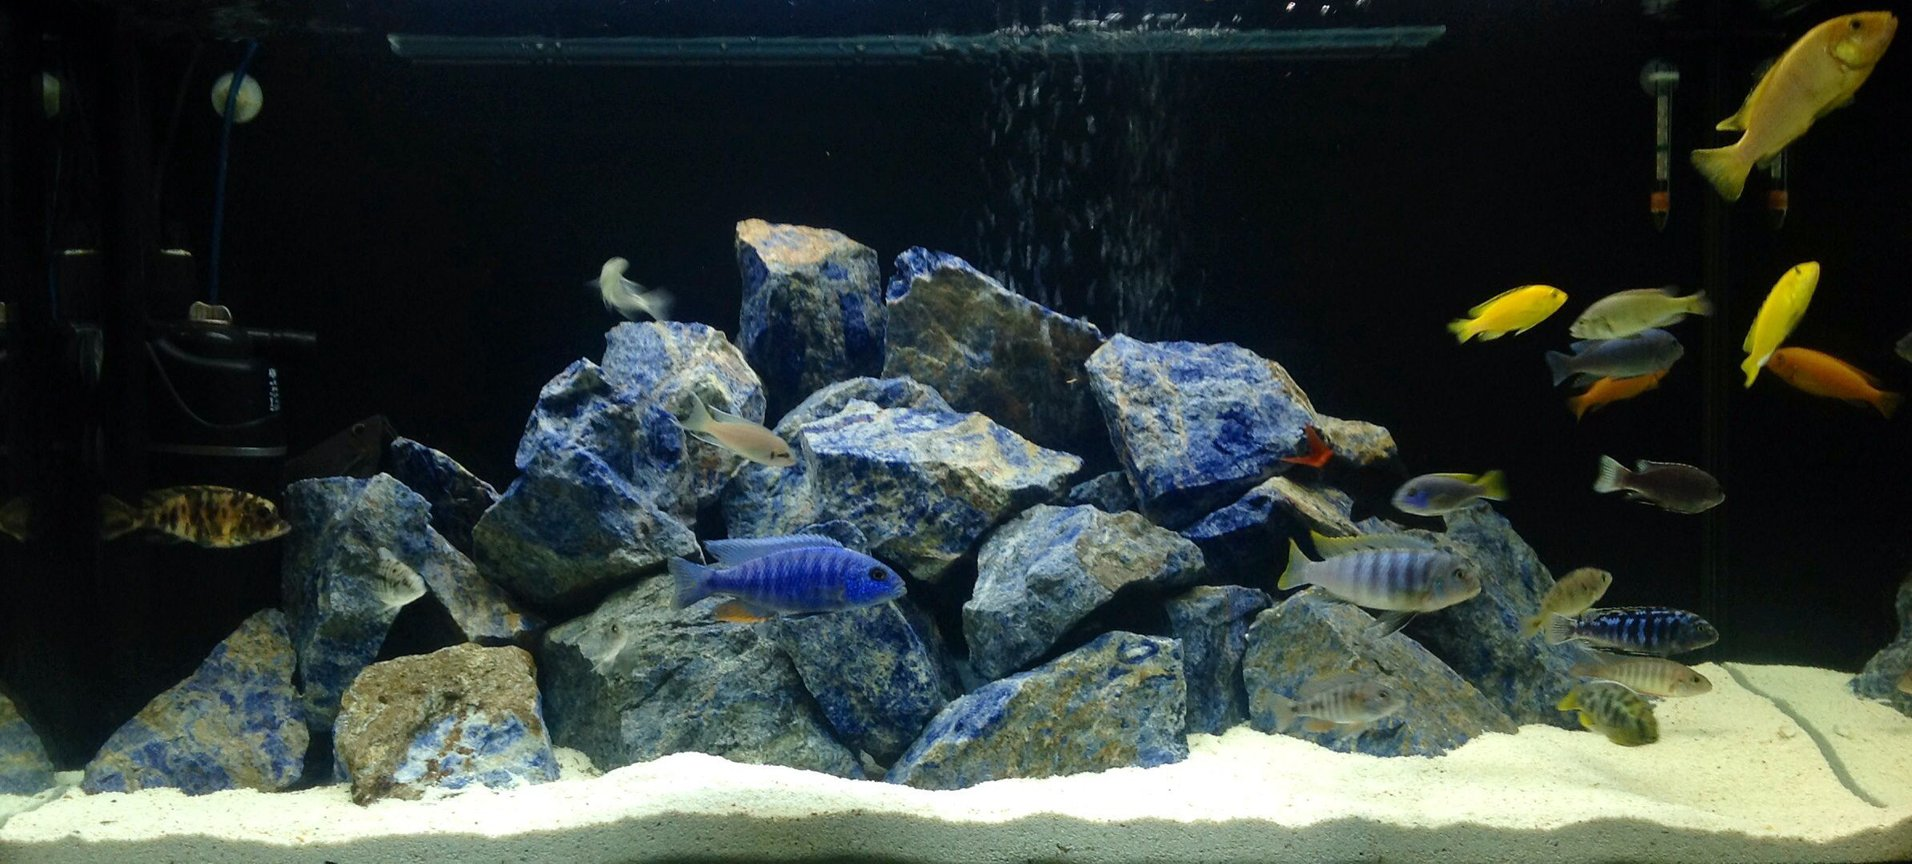 100 gallons freshwater fish tank (mostly fish and non-living decorations) - Cichlid tank